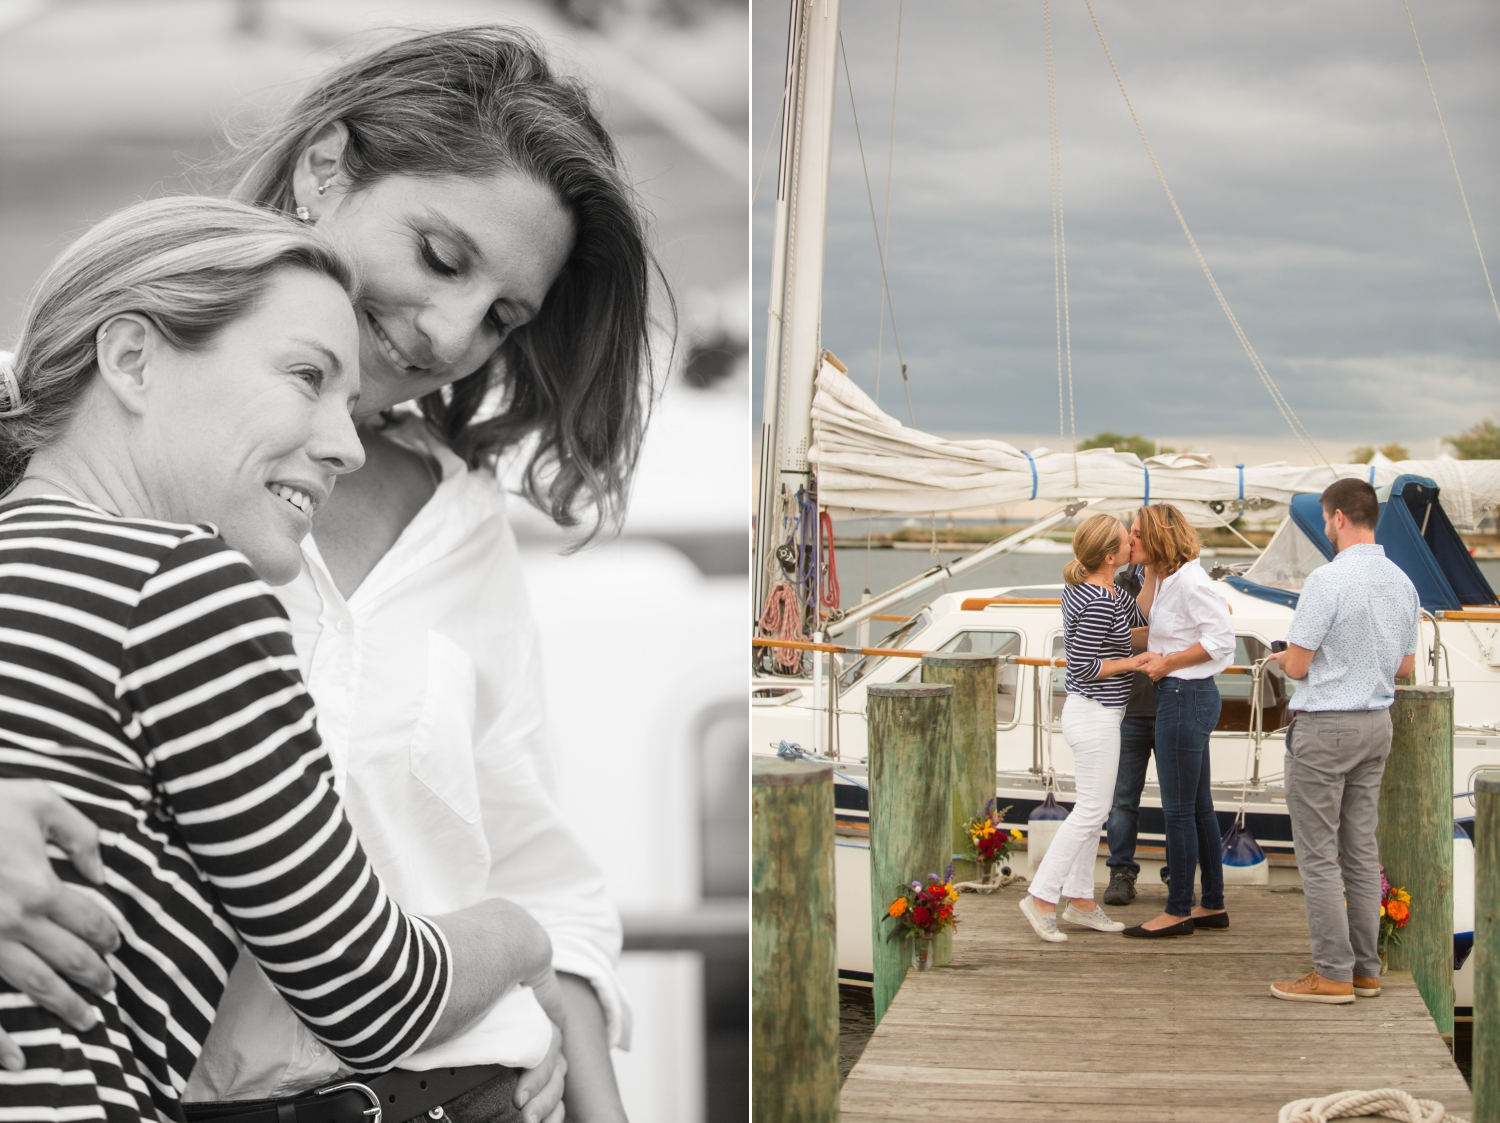 two brides seal the union elopement ceremony on their sailboat